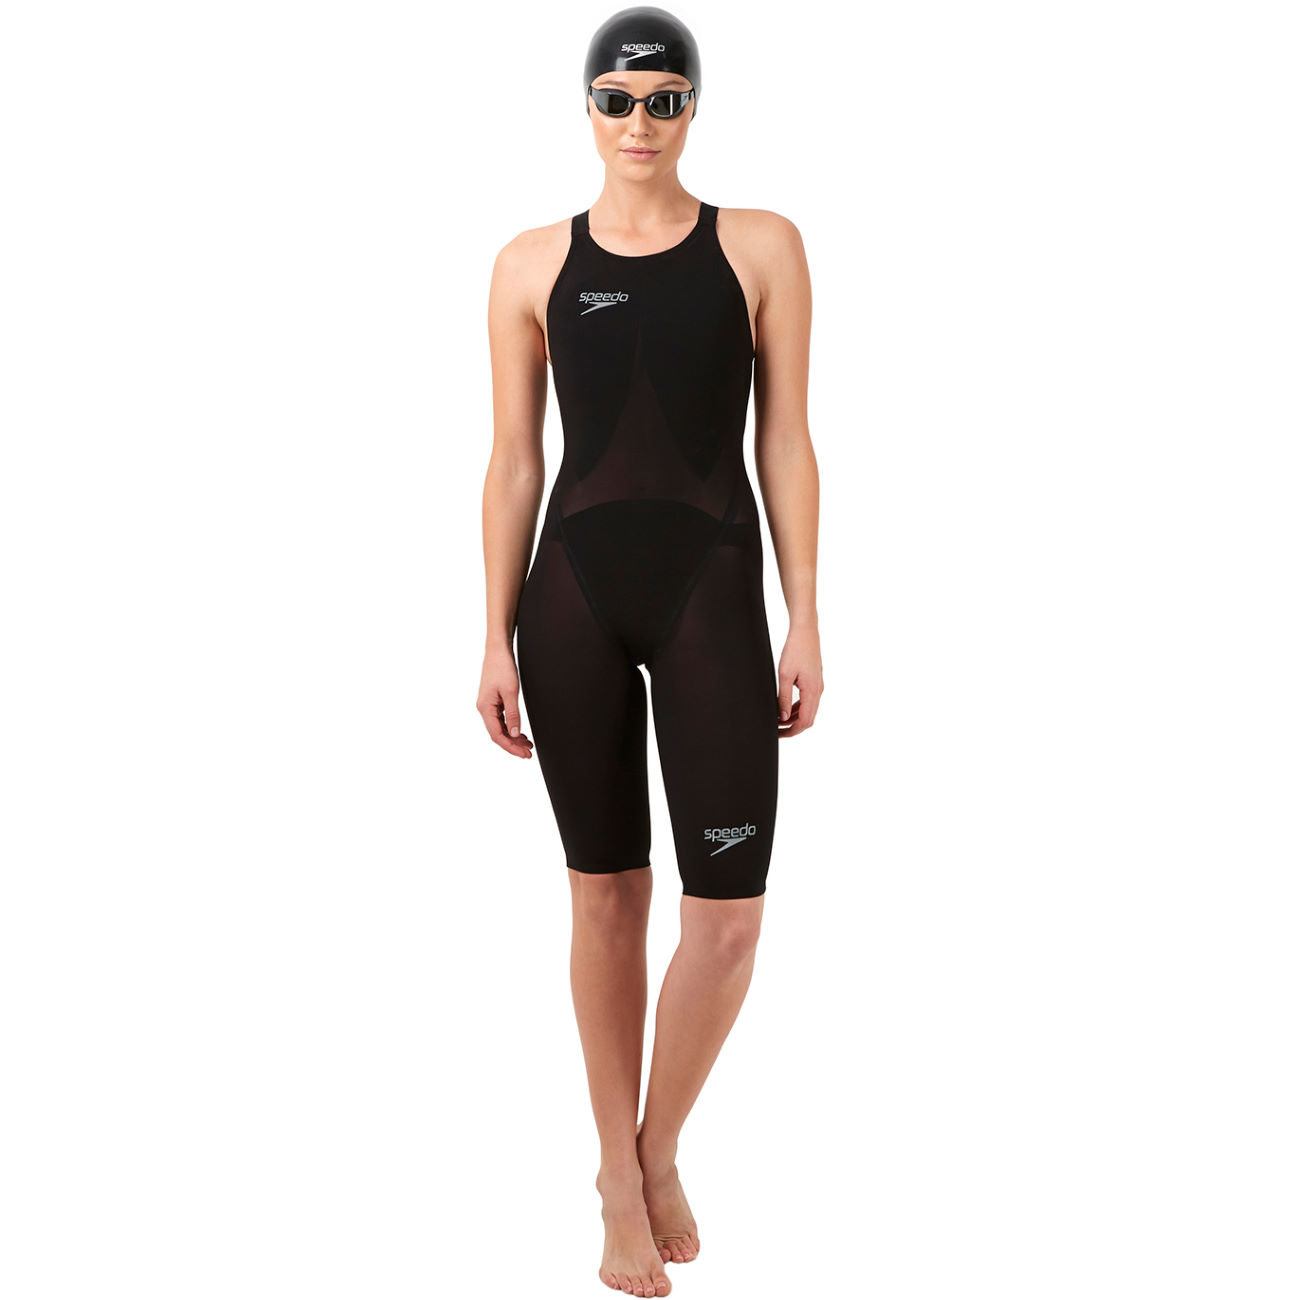 speedo lzr racer Speedo lzr racer aquabeat (2gb) waterproof mp3 player new model now features 2gb of internal memory that stores up to 500 mp3 or 1,000 wma files.